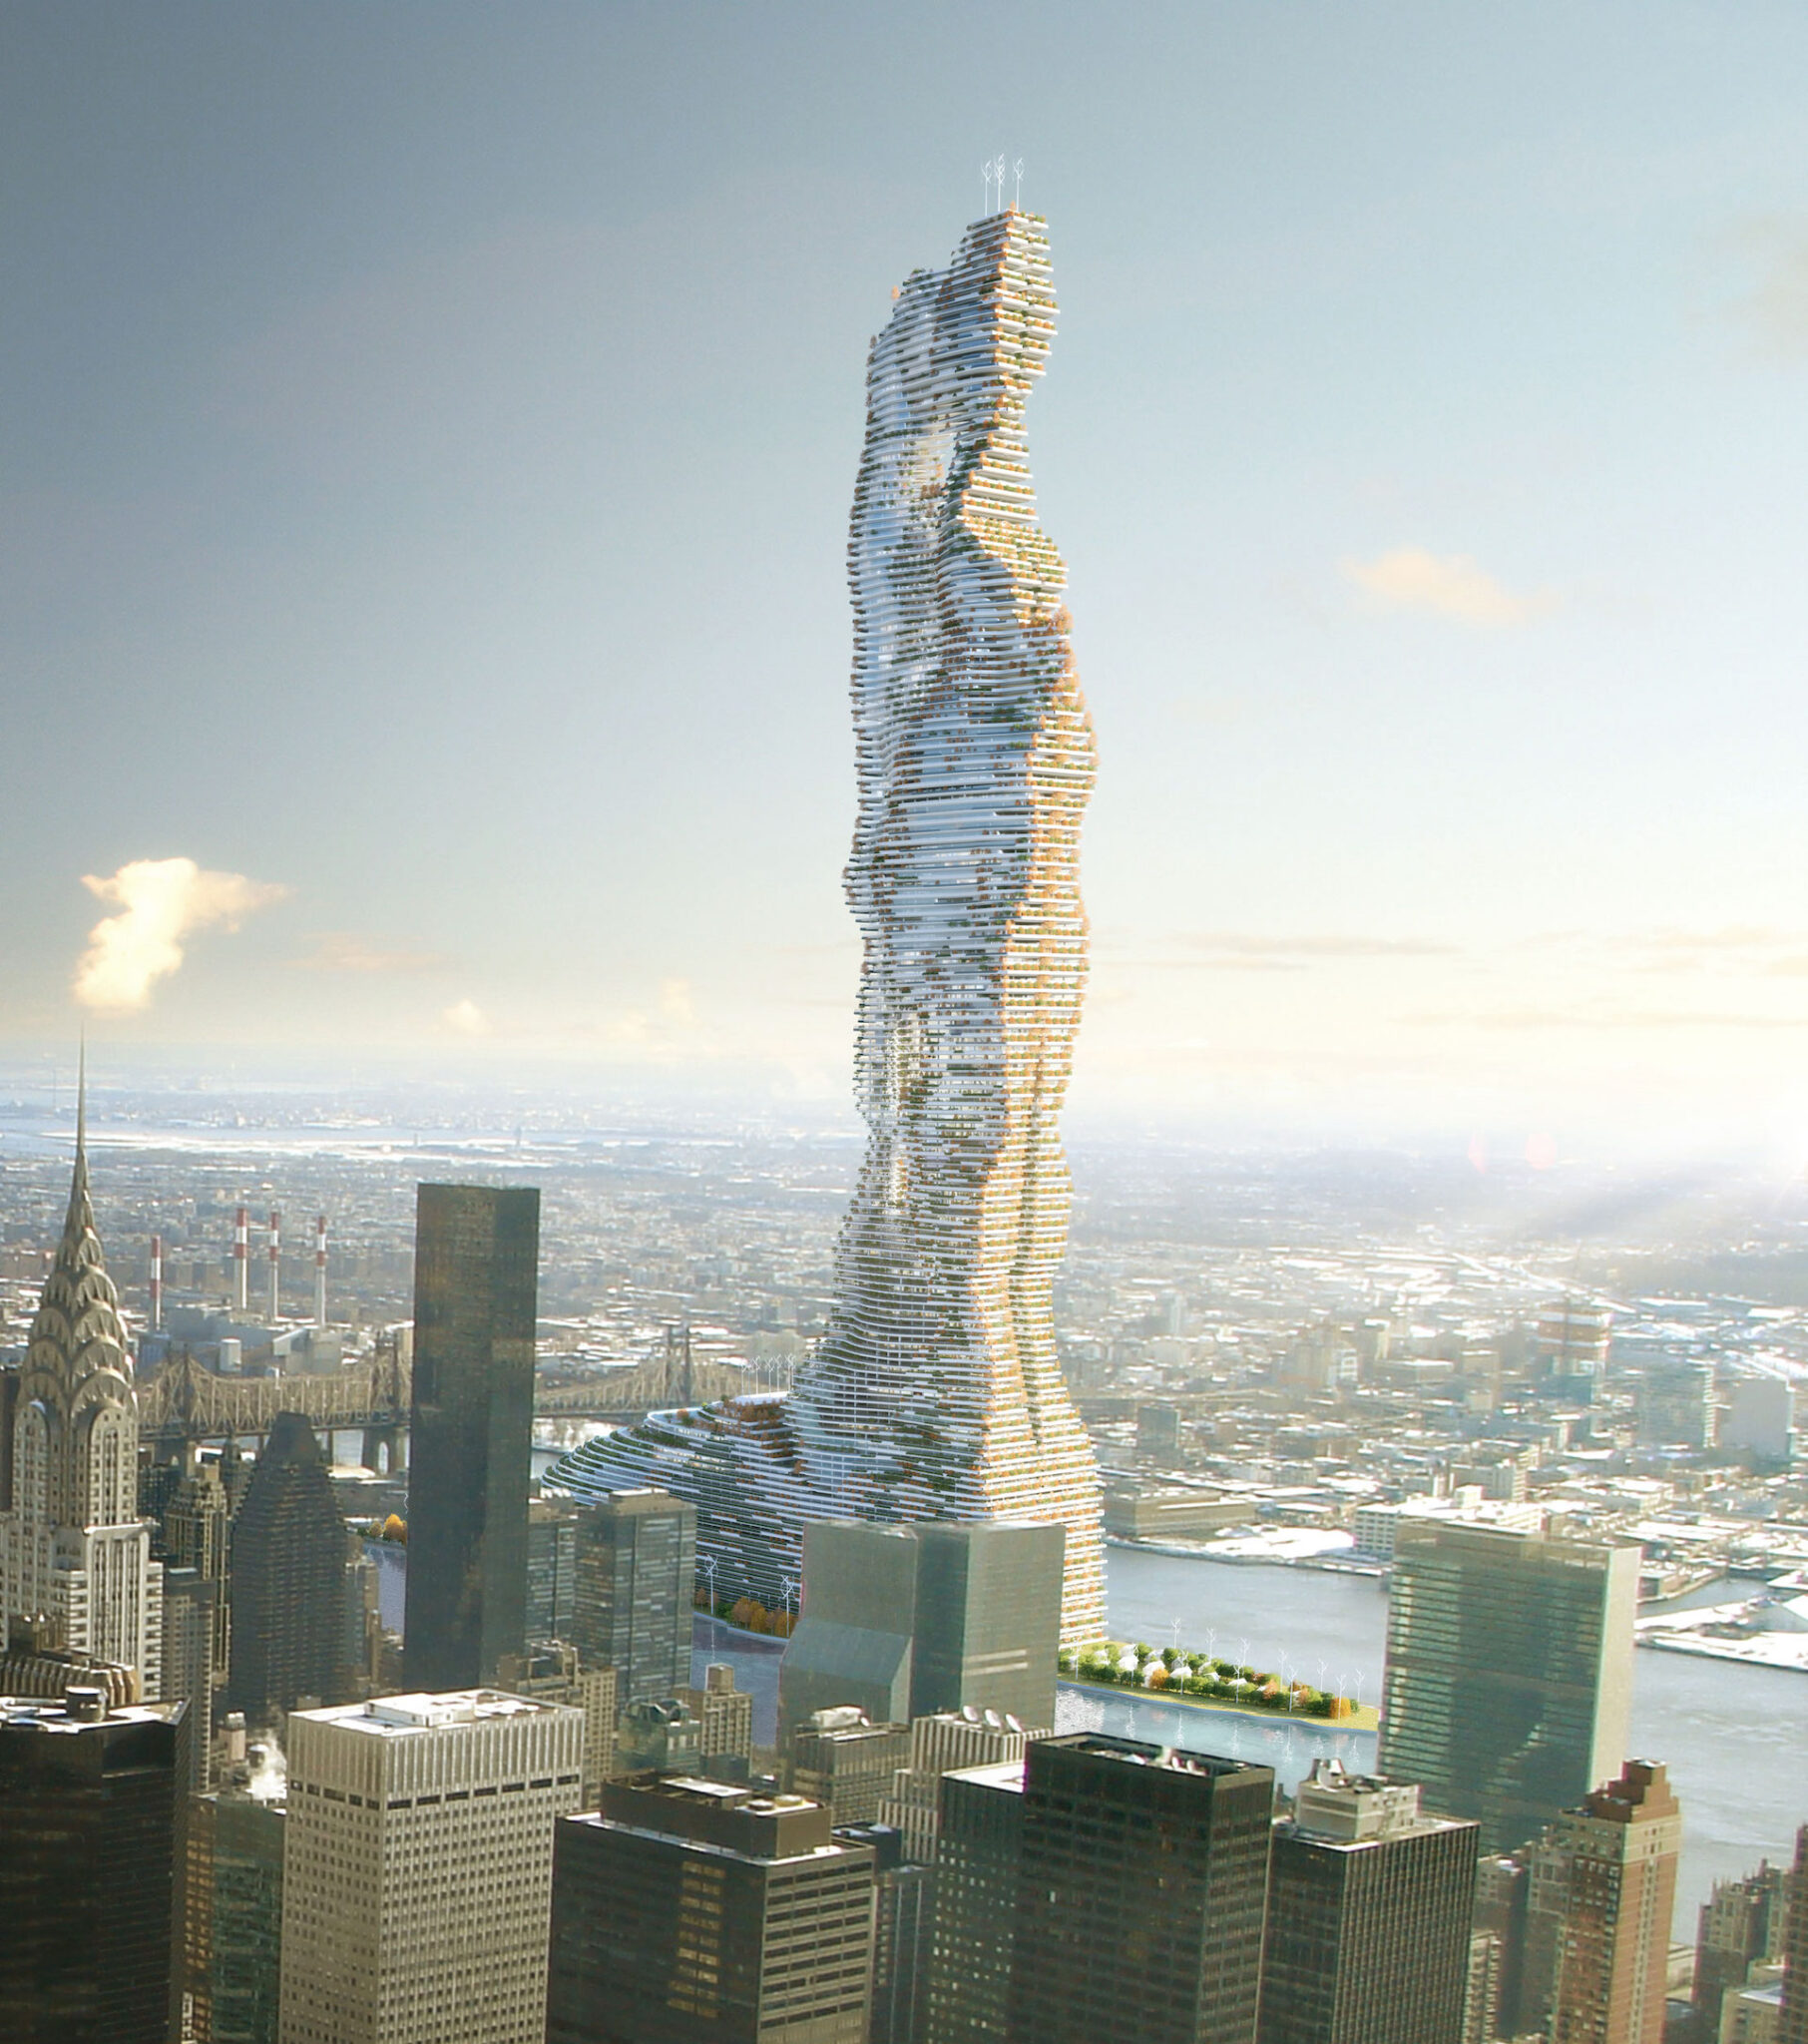 New York may build a skyscraper equipped with wind turbines and solar facades